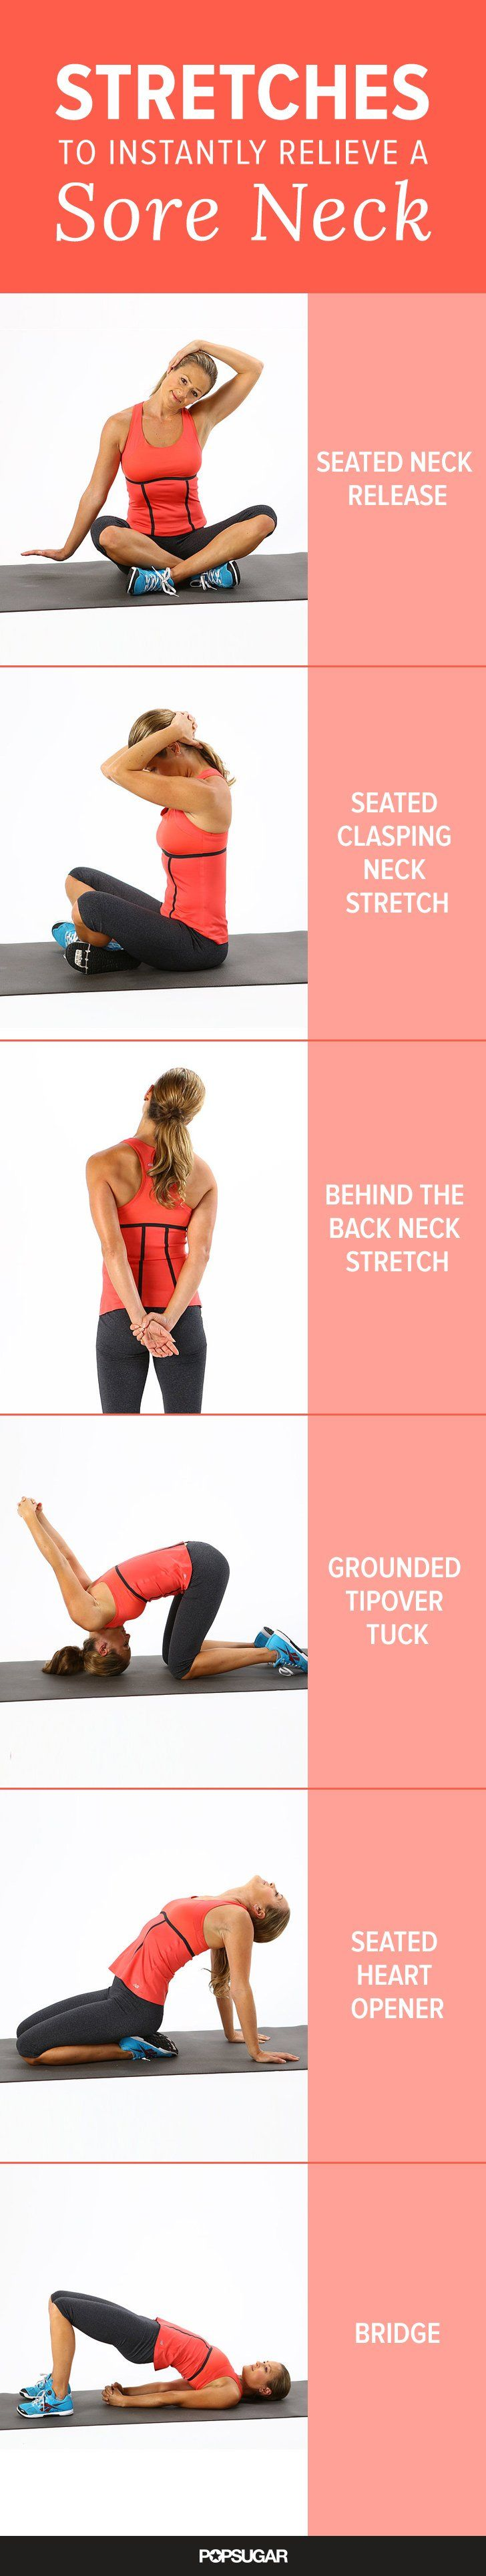 The Best Stretches to Relieve a Sore Neck